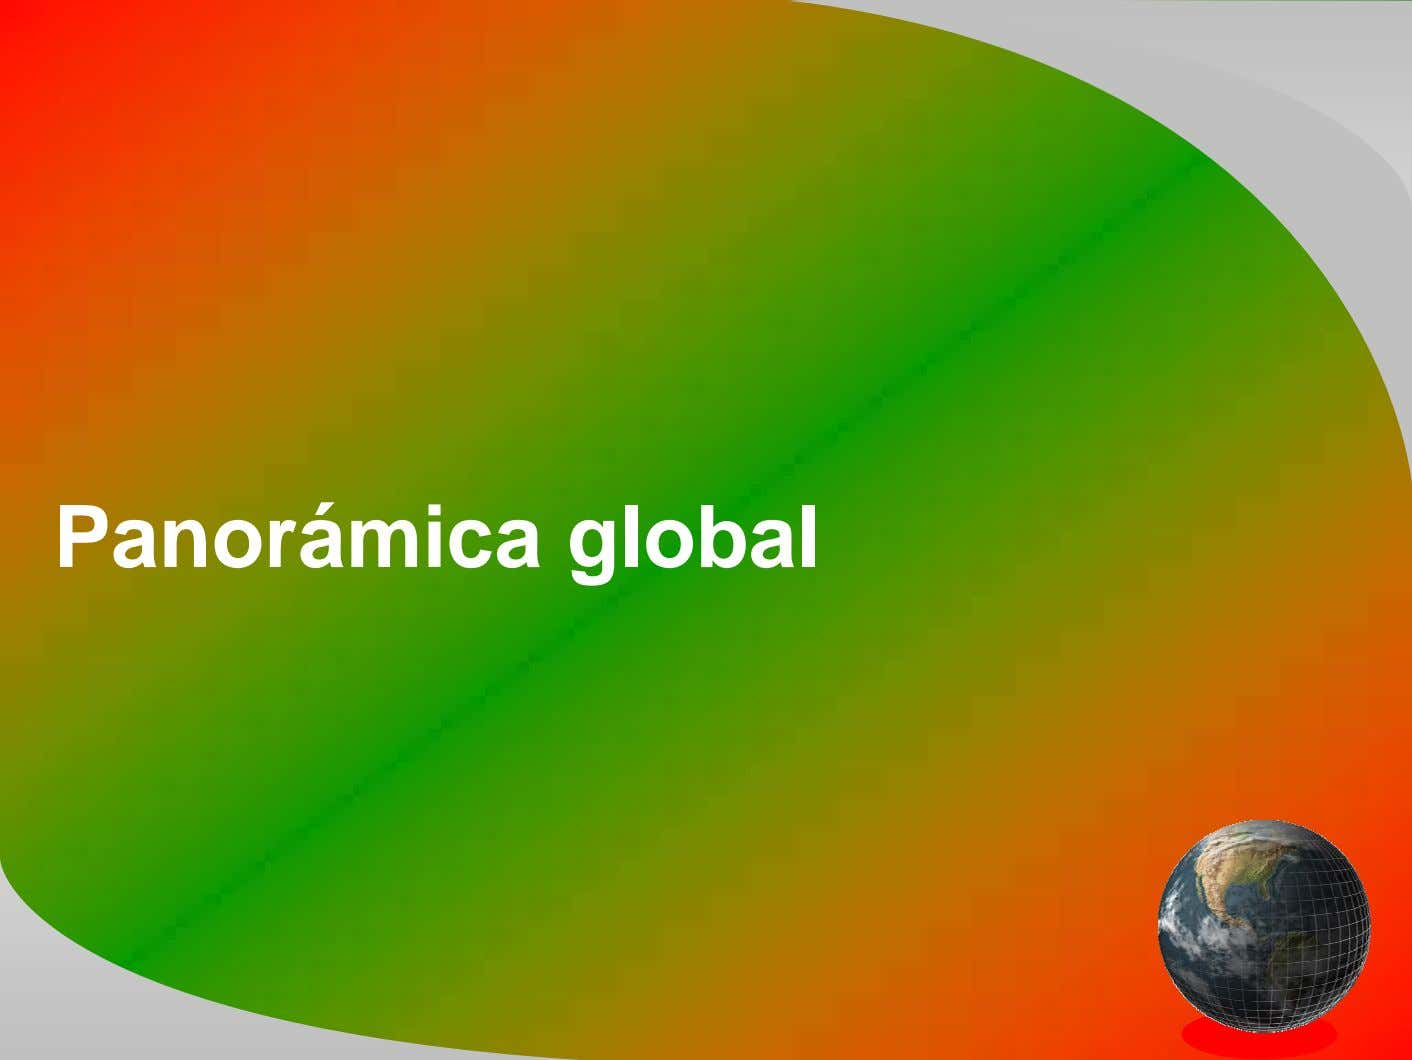 Panorámica global